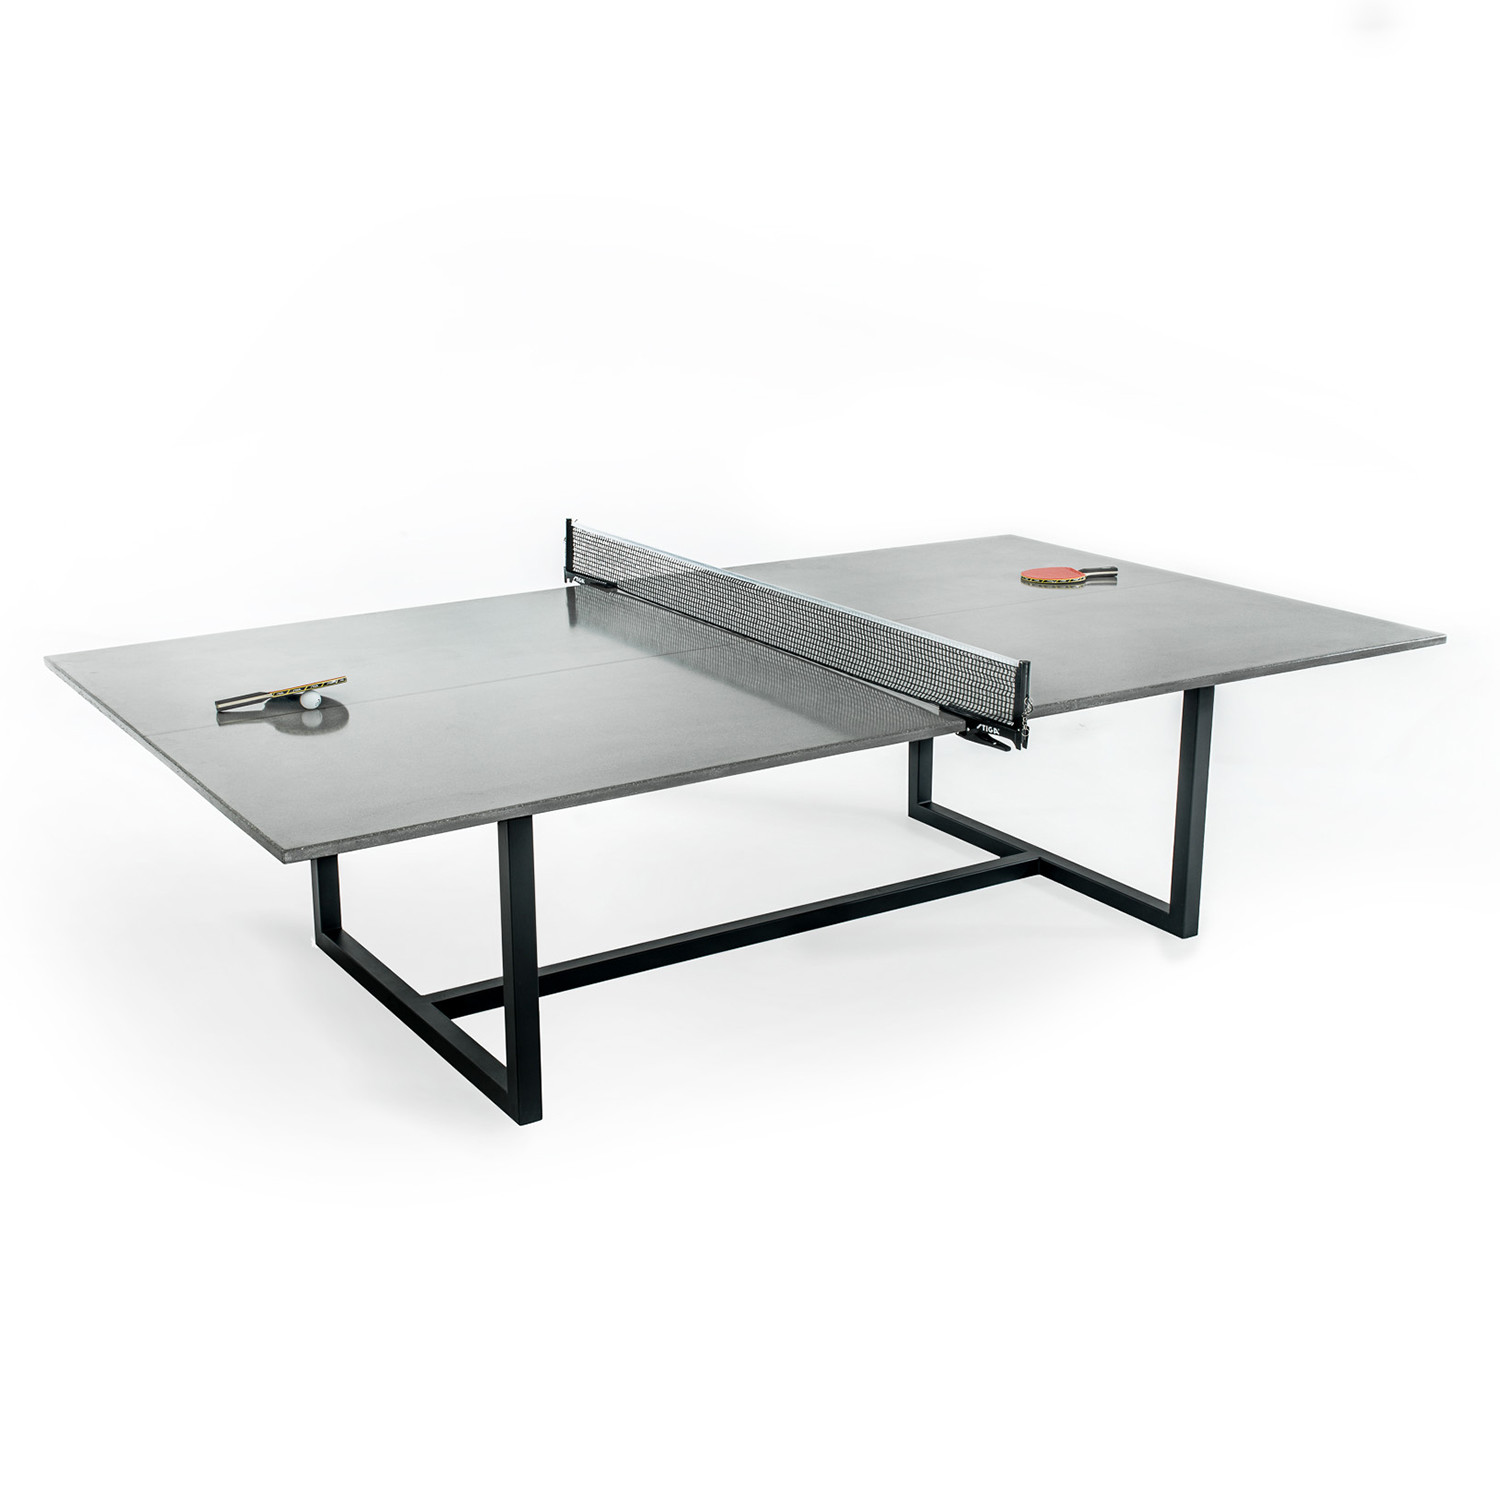 Vue Ping Pong Table Stainless Steel Base James De Wulf Touch Of Modern